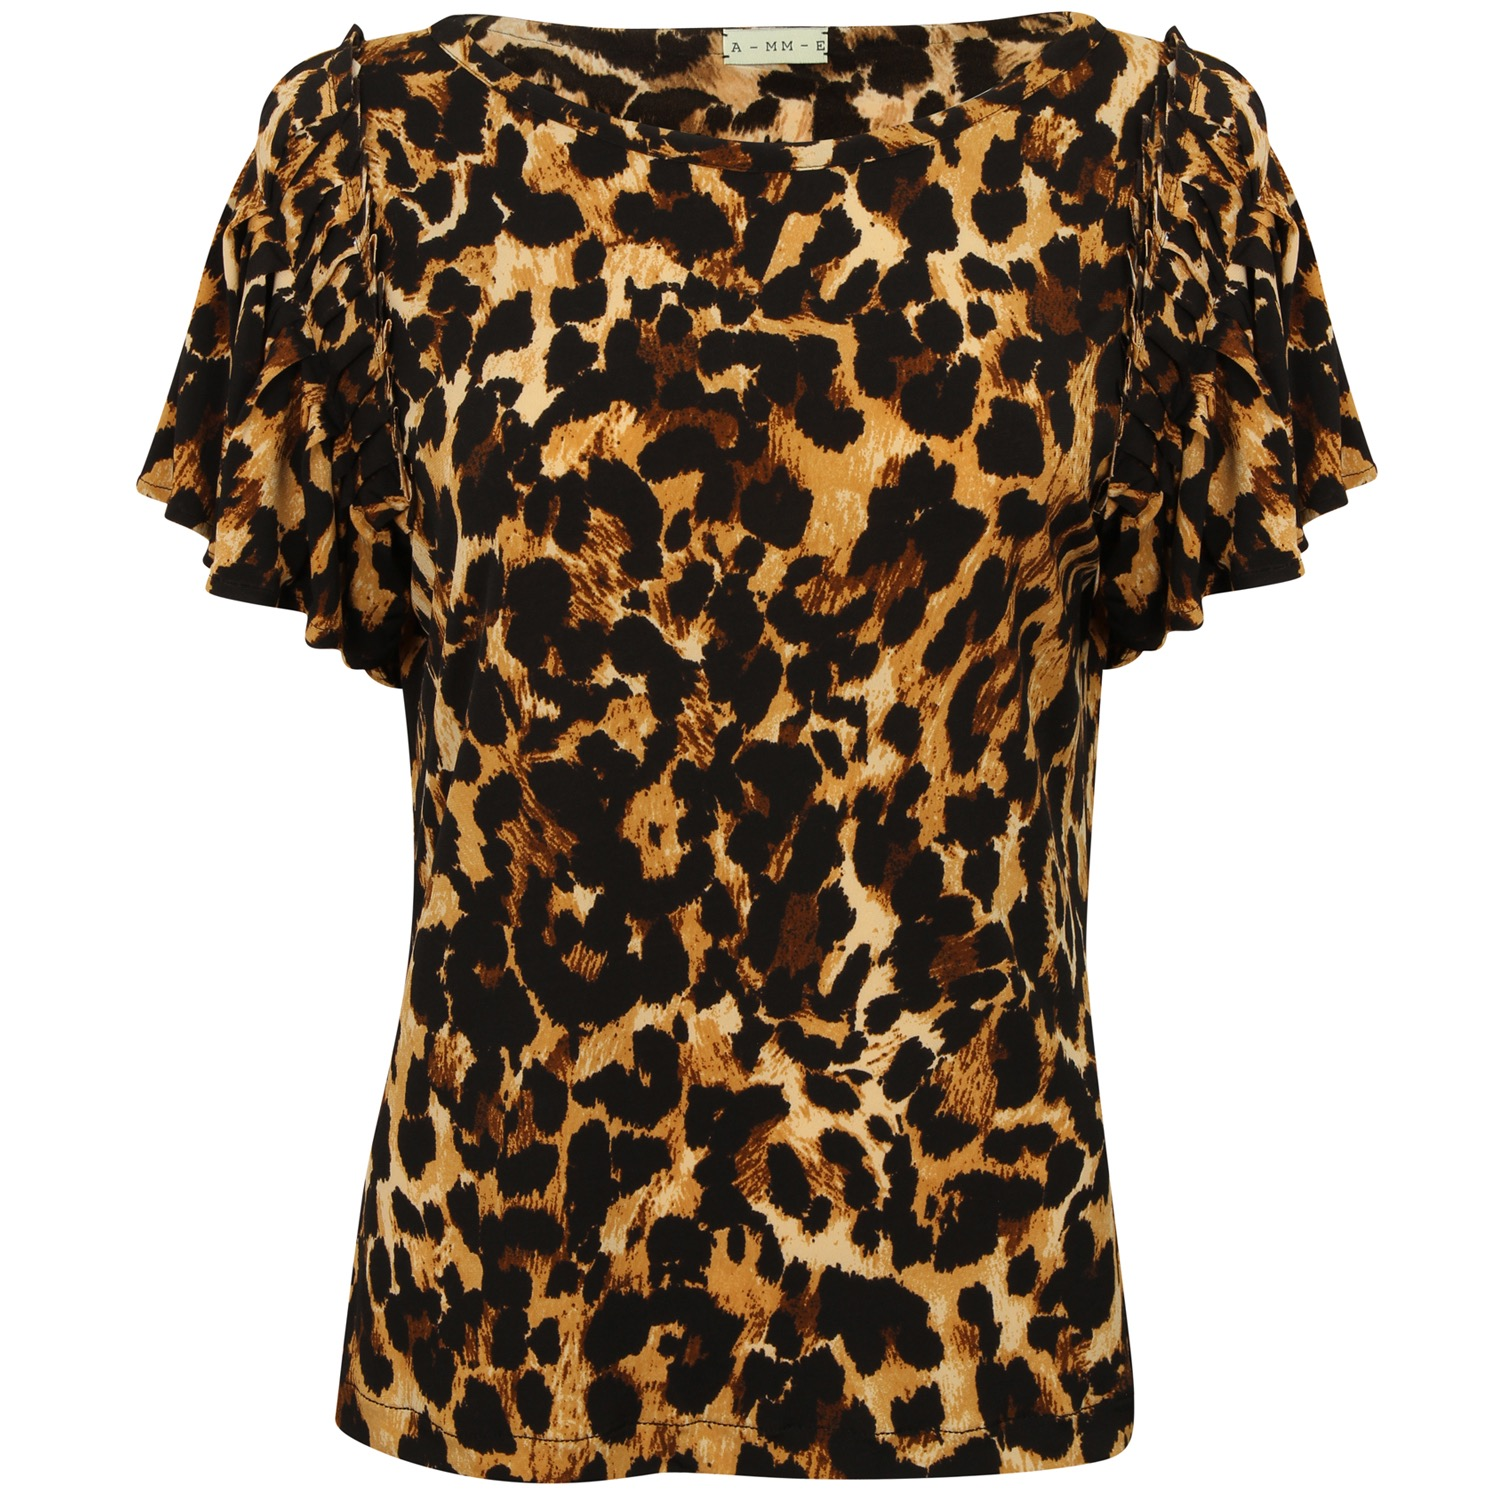 The Leopard 'T'